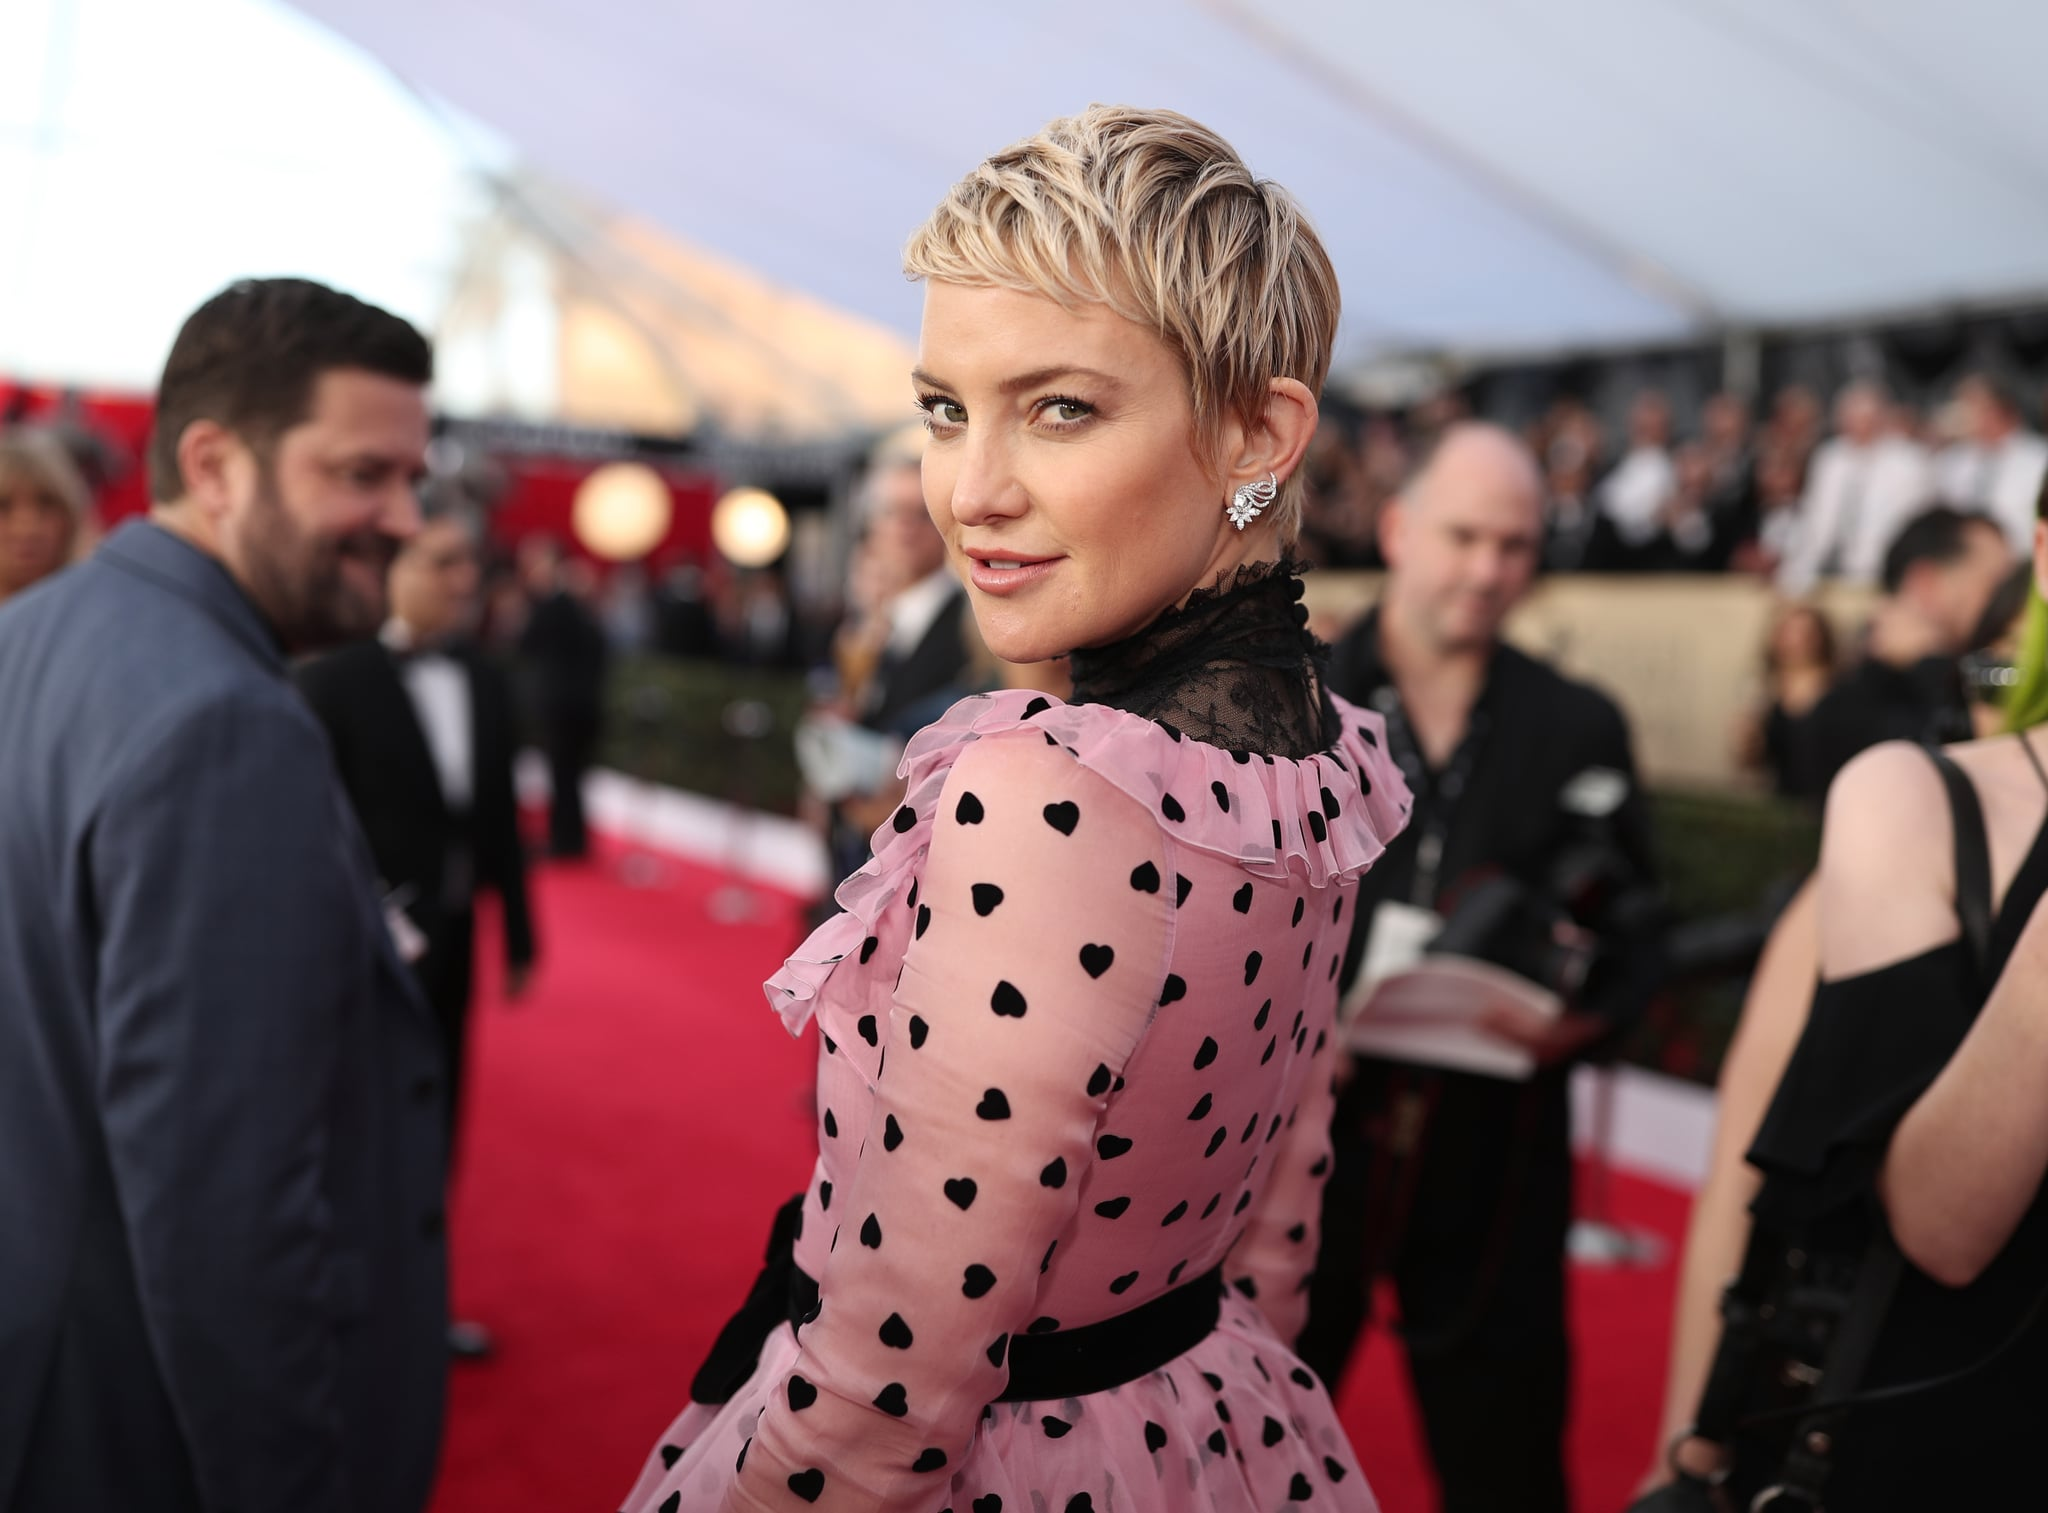 LOS ANGELES, CA - JANUARY 21:  Actor Kate Hudson attends the 24th Annual Screen Actors Guild Awards at The Shrine Auditorium on January 21, 2018 in Los Angeles, California. 27522_010  (Photo by Christopher Polk/Getty Images for Turner)